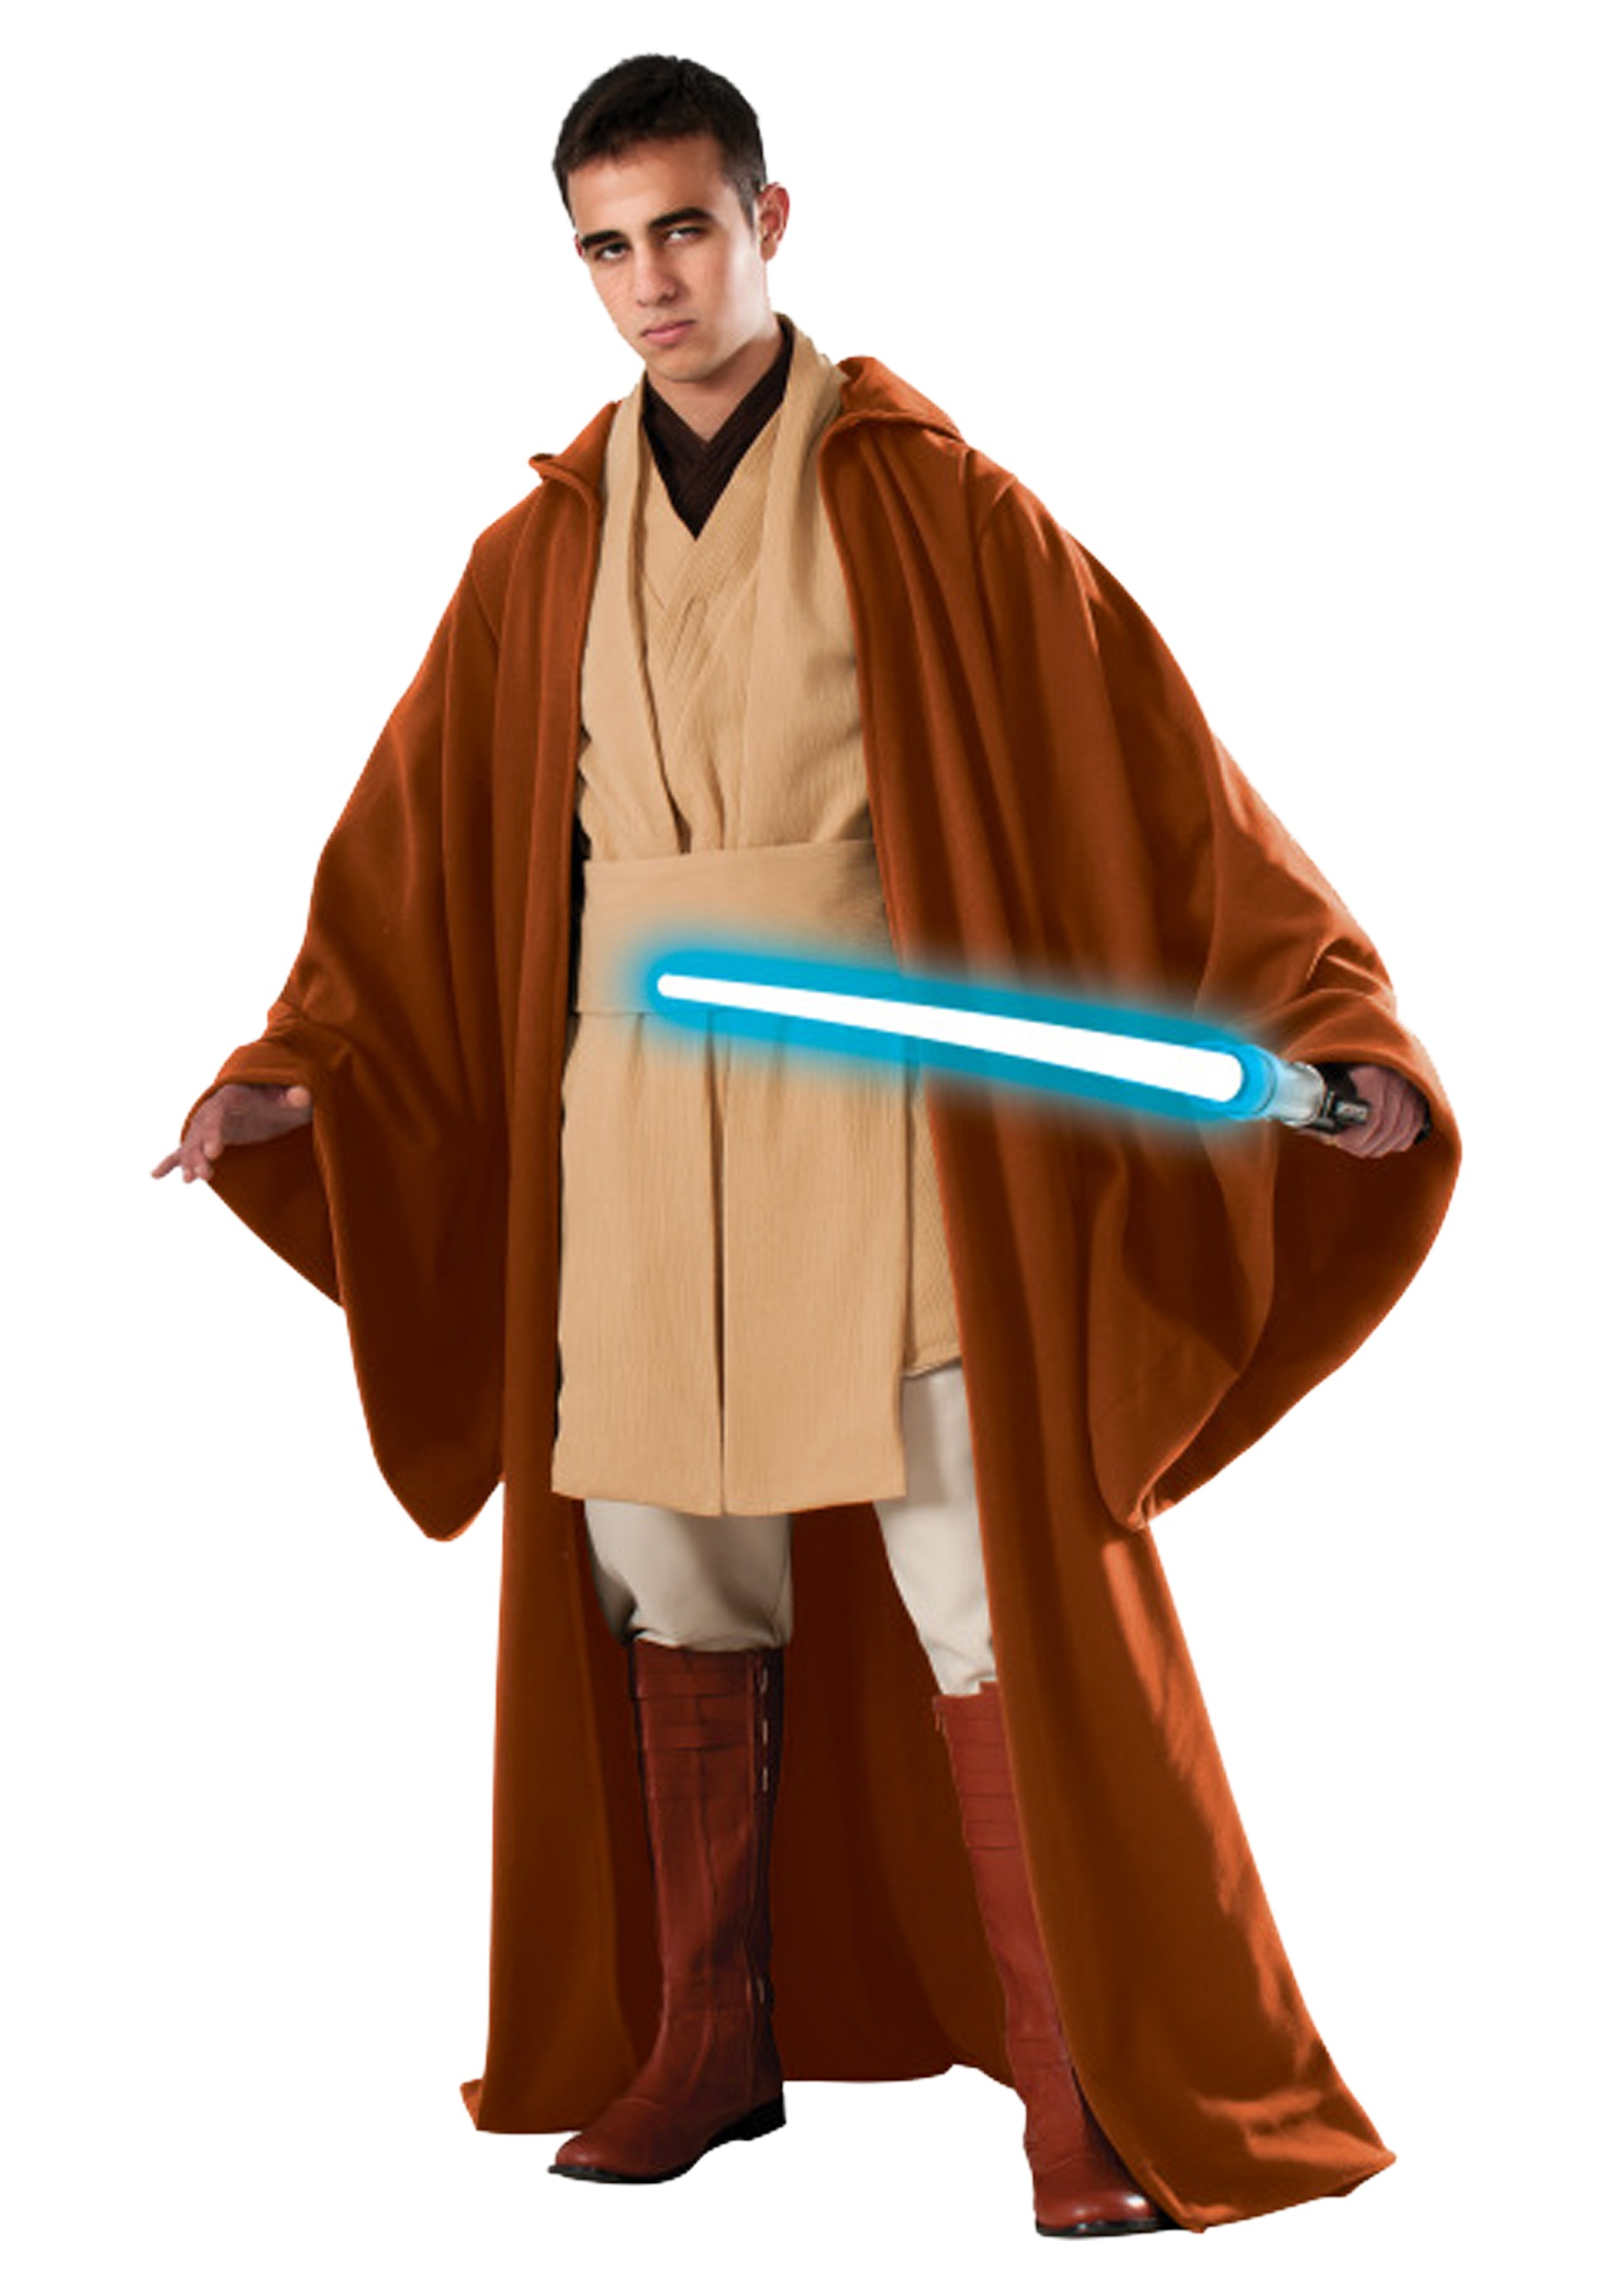 Find great deals on eBay for obi-wan kenobi costume. Shop with confidence.